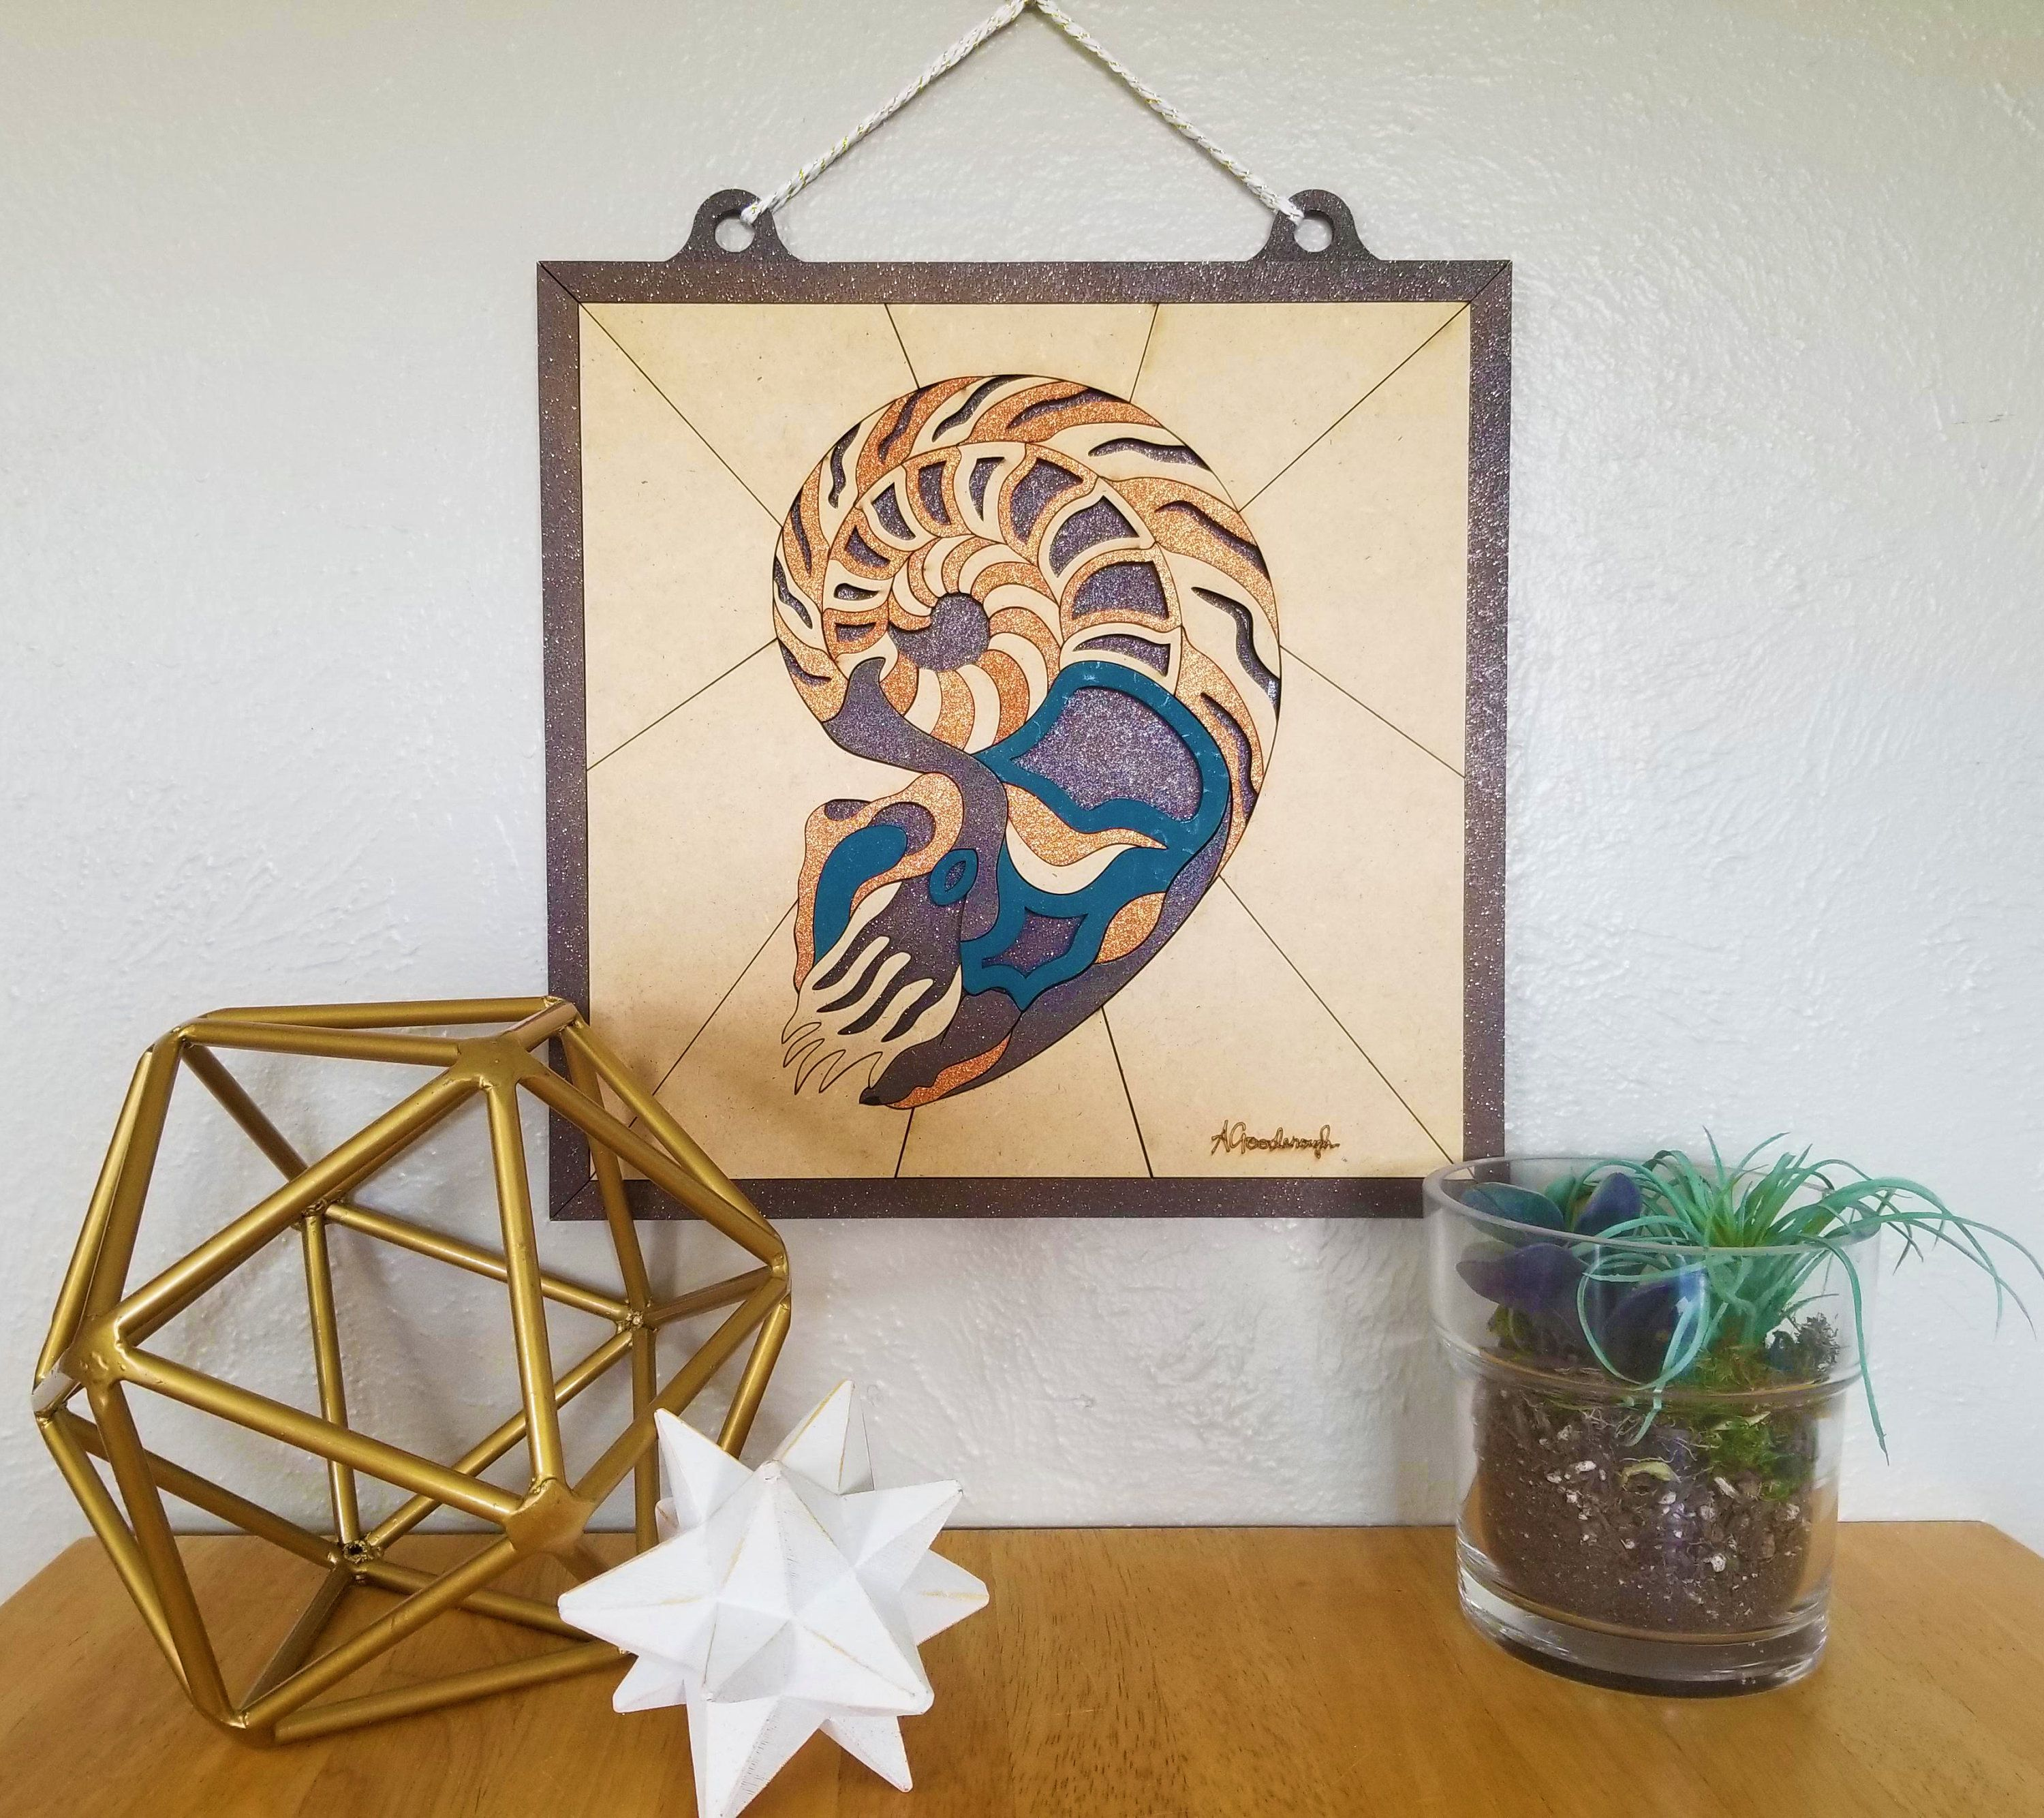 Wood wall art d nautilus laser cut laser art pinterest